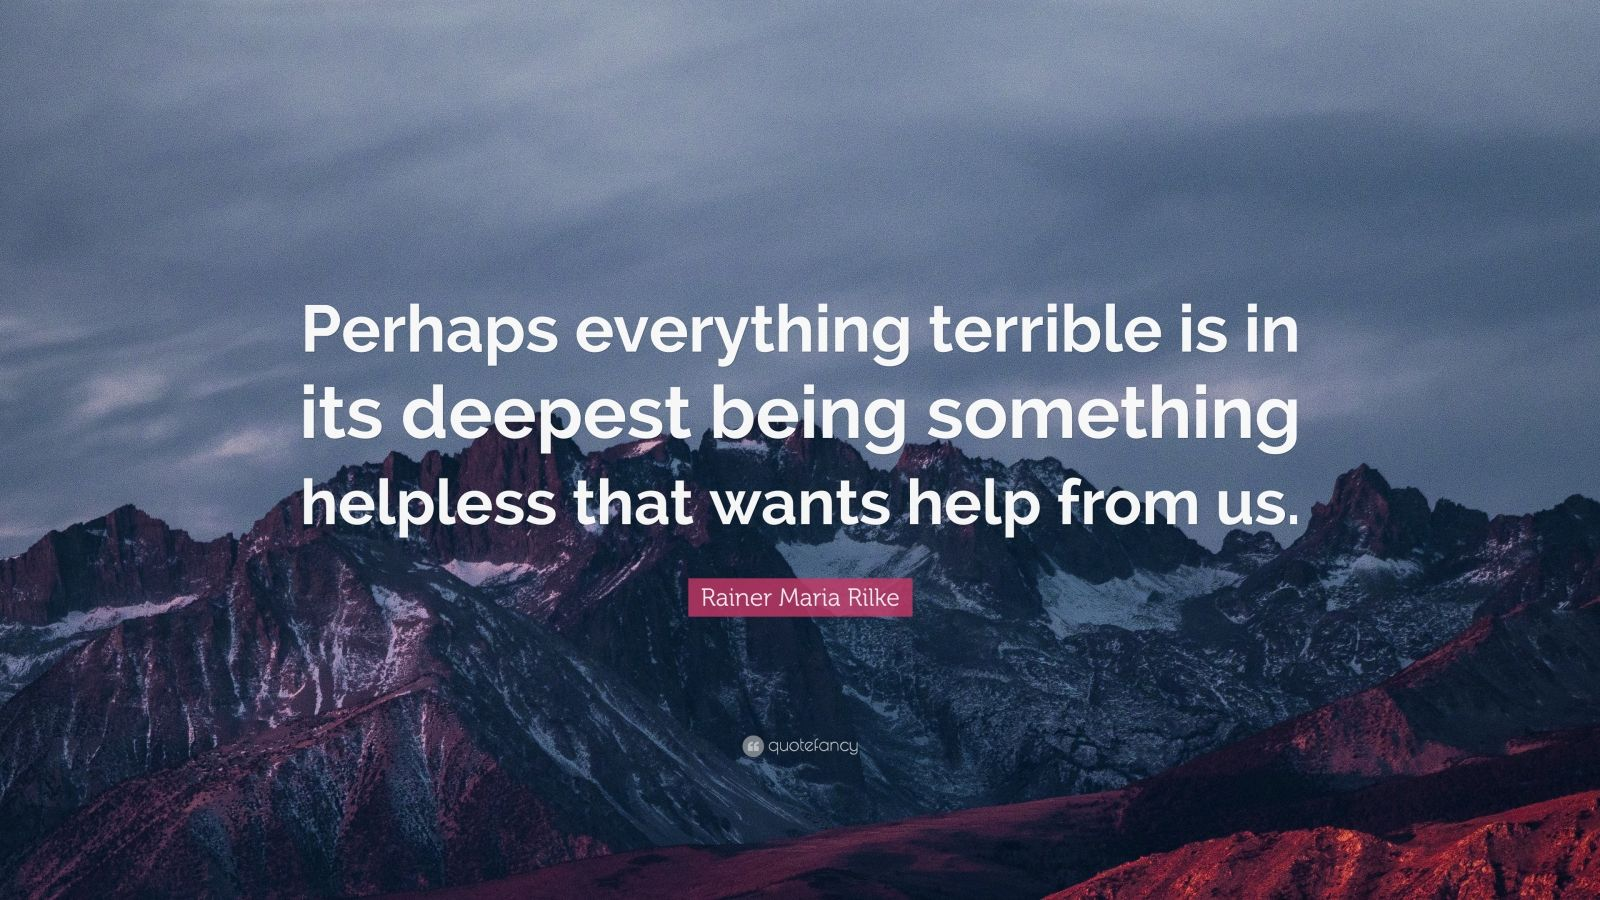 """Rainer Maria Rilke Quote: """"Perhaps everything terrible is in its deepest being something helpless that wants help from us."""""""